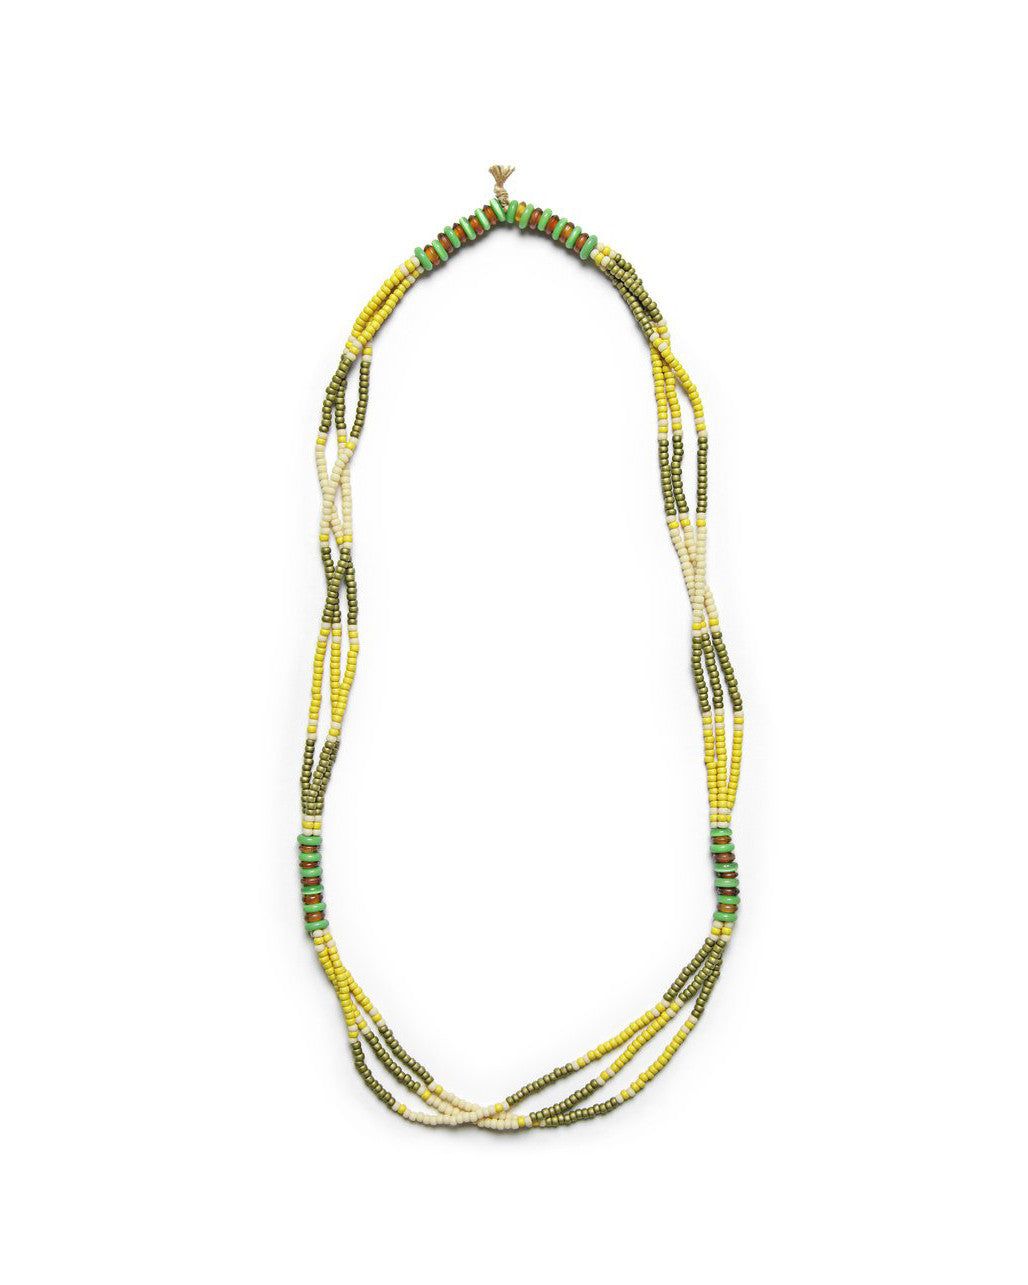 montagnard olive and jade beaded necklace